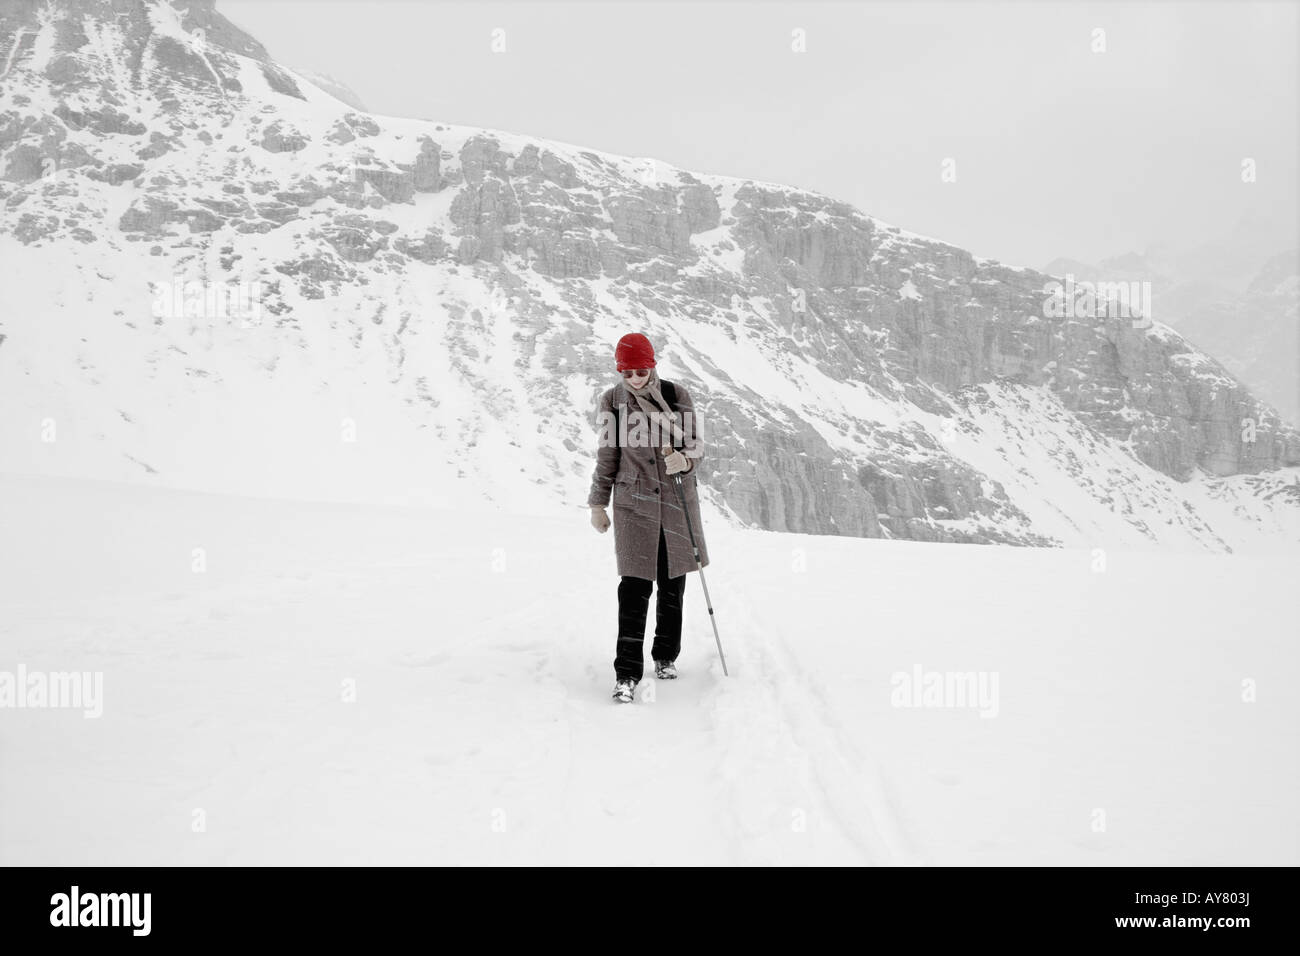 One Young Woman Crossing Mountain Top In Snowstorm - Stock Image